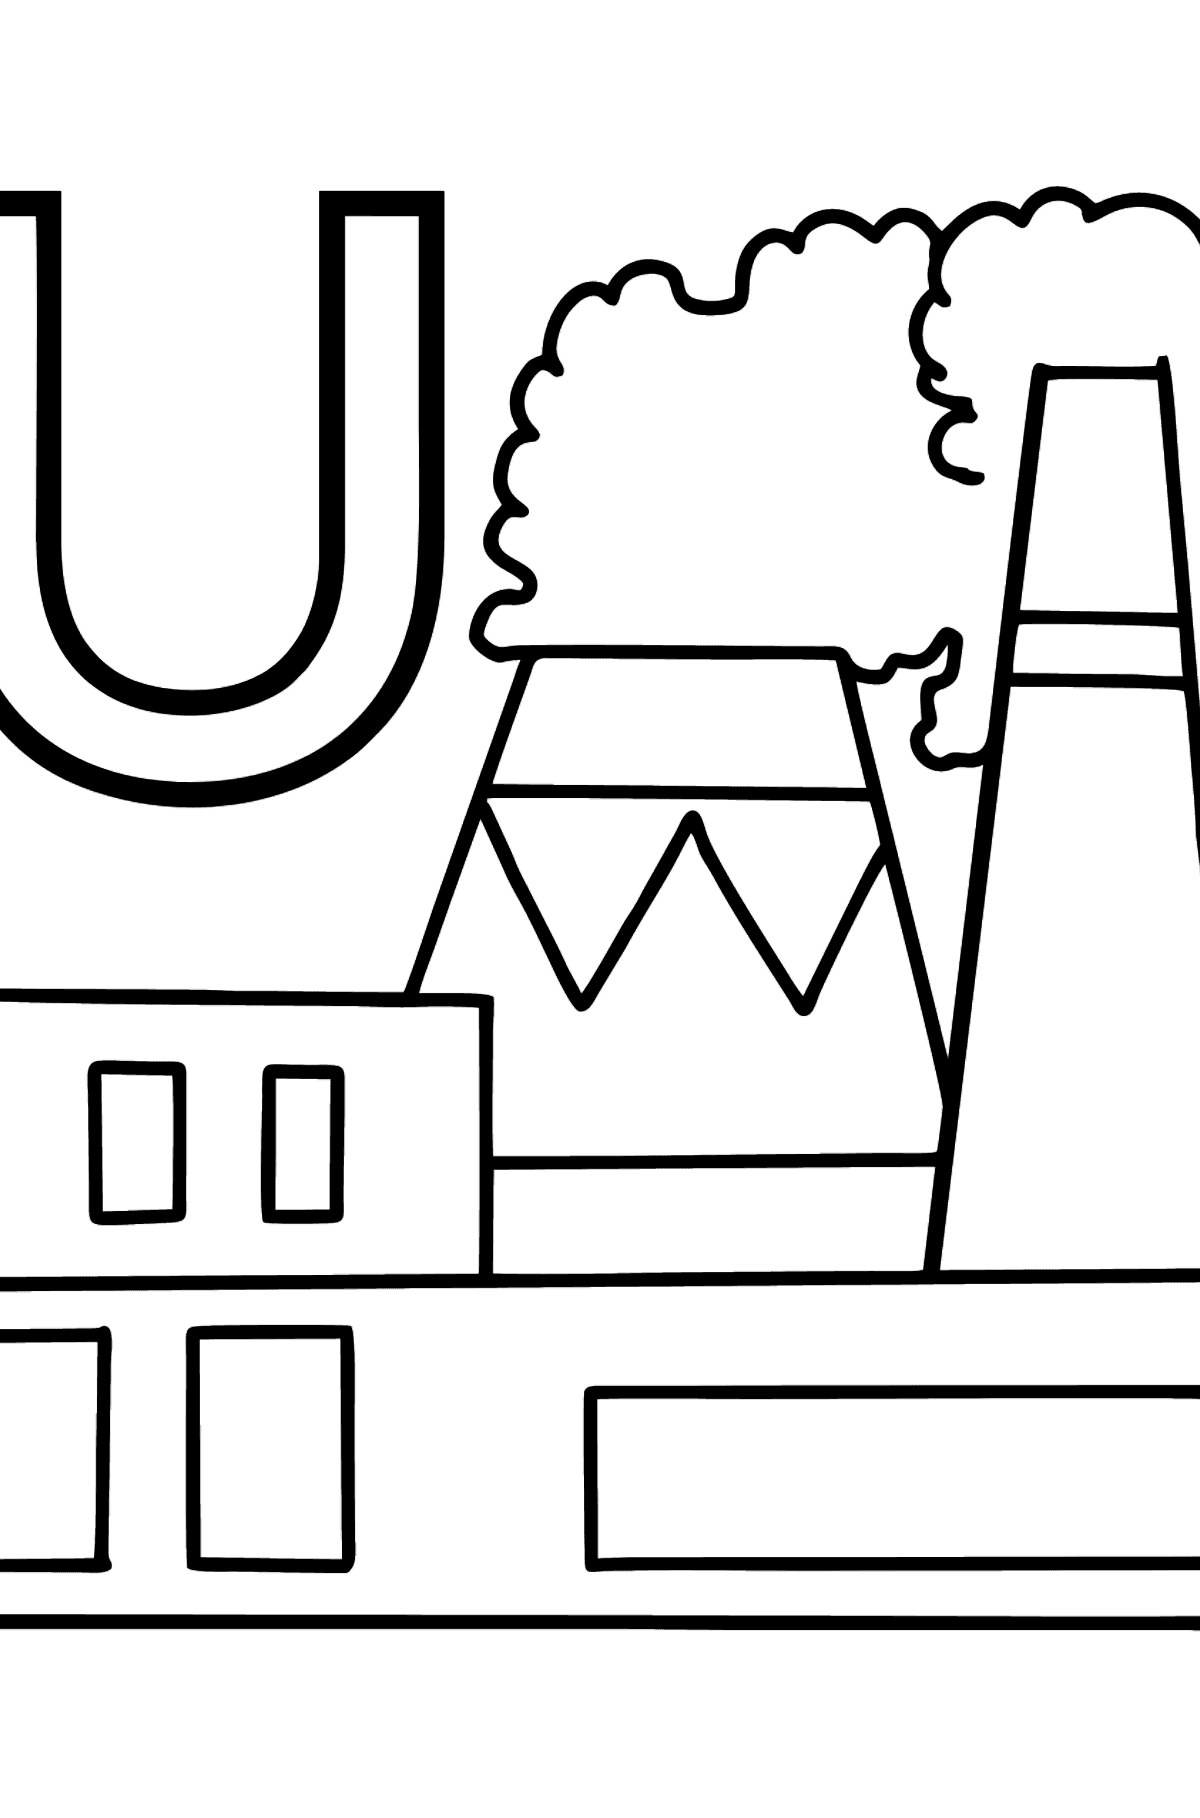 French Letter U coloring pages - USINE - Coloring Pages for Kids